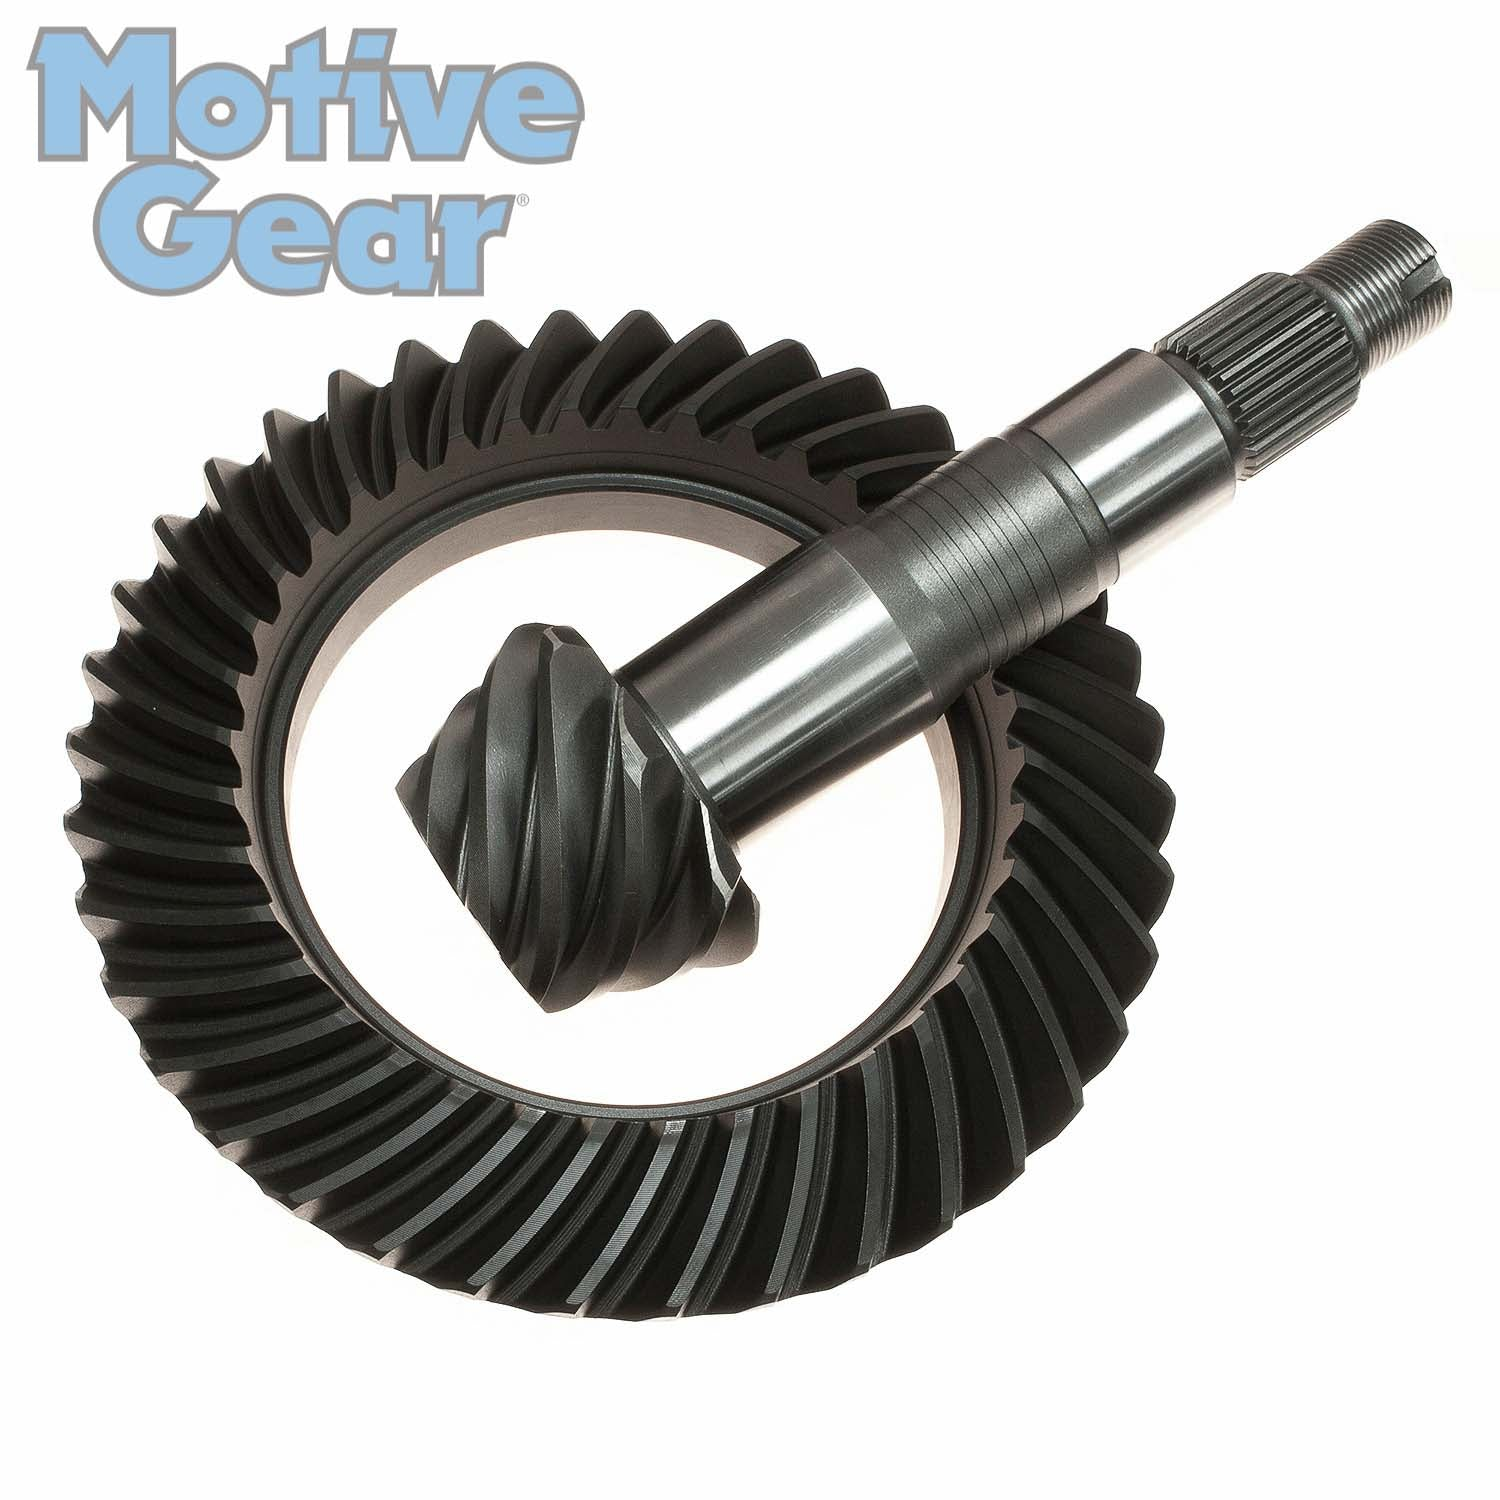 Toyota 8.4 Motive Gear Ring and Pinion Gear Set